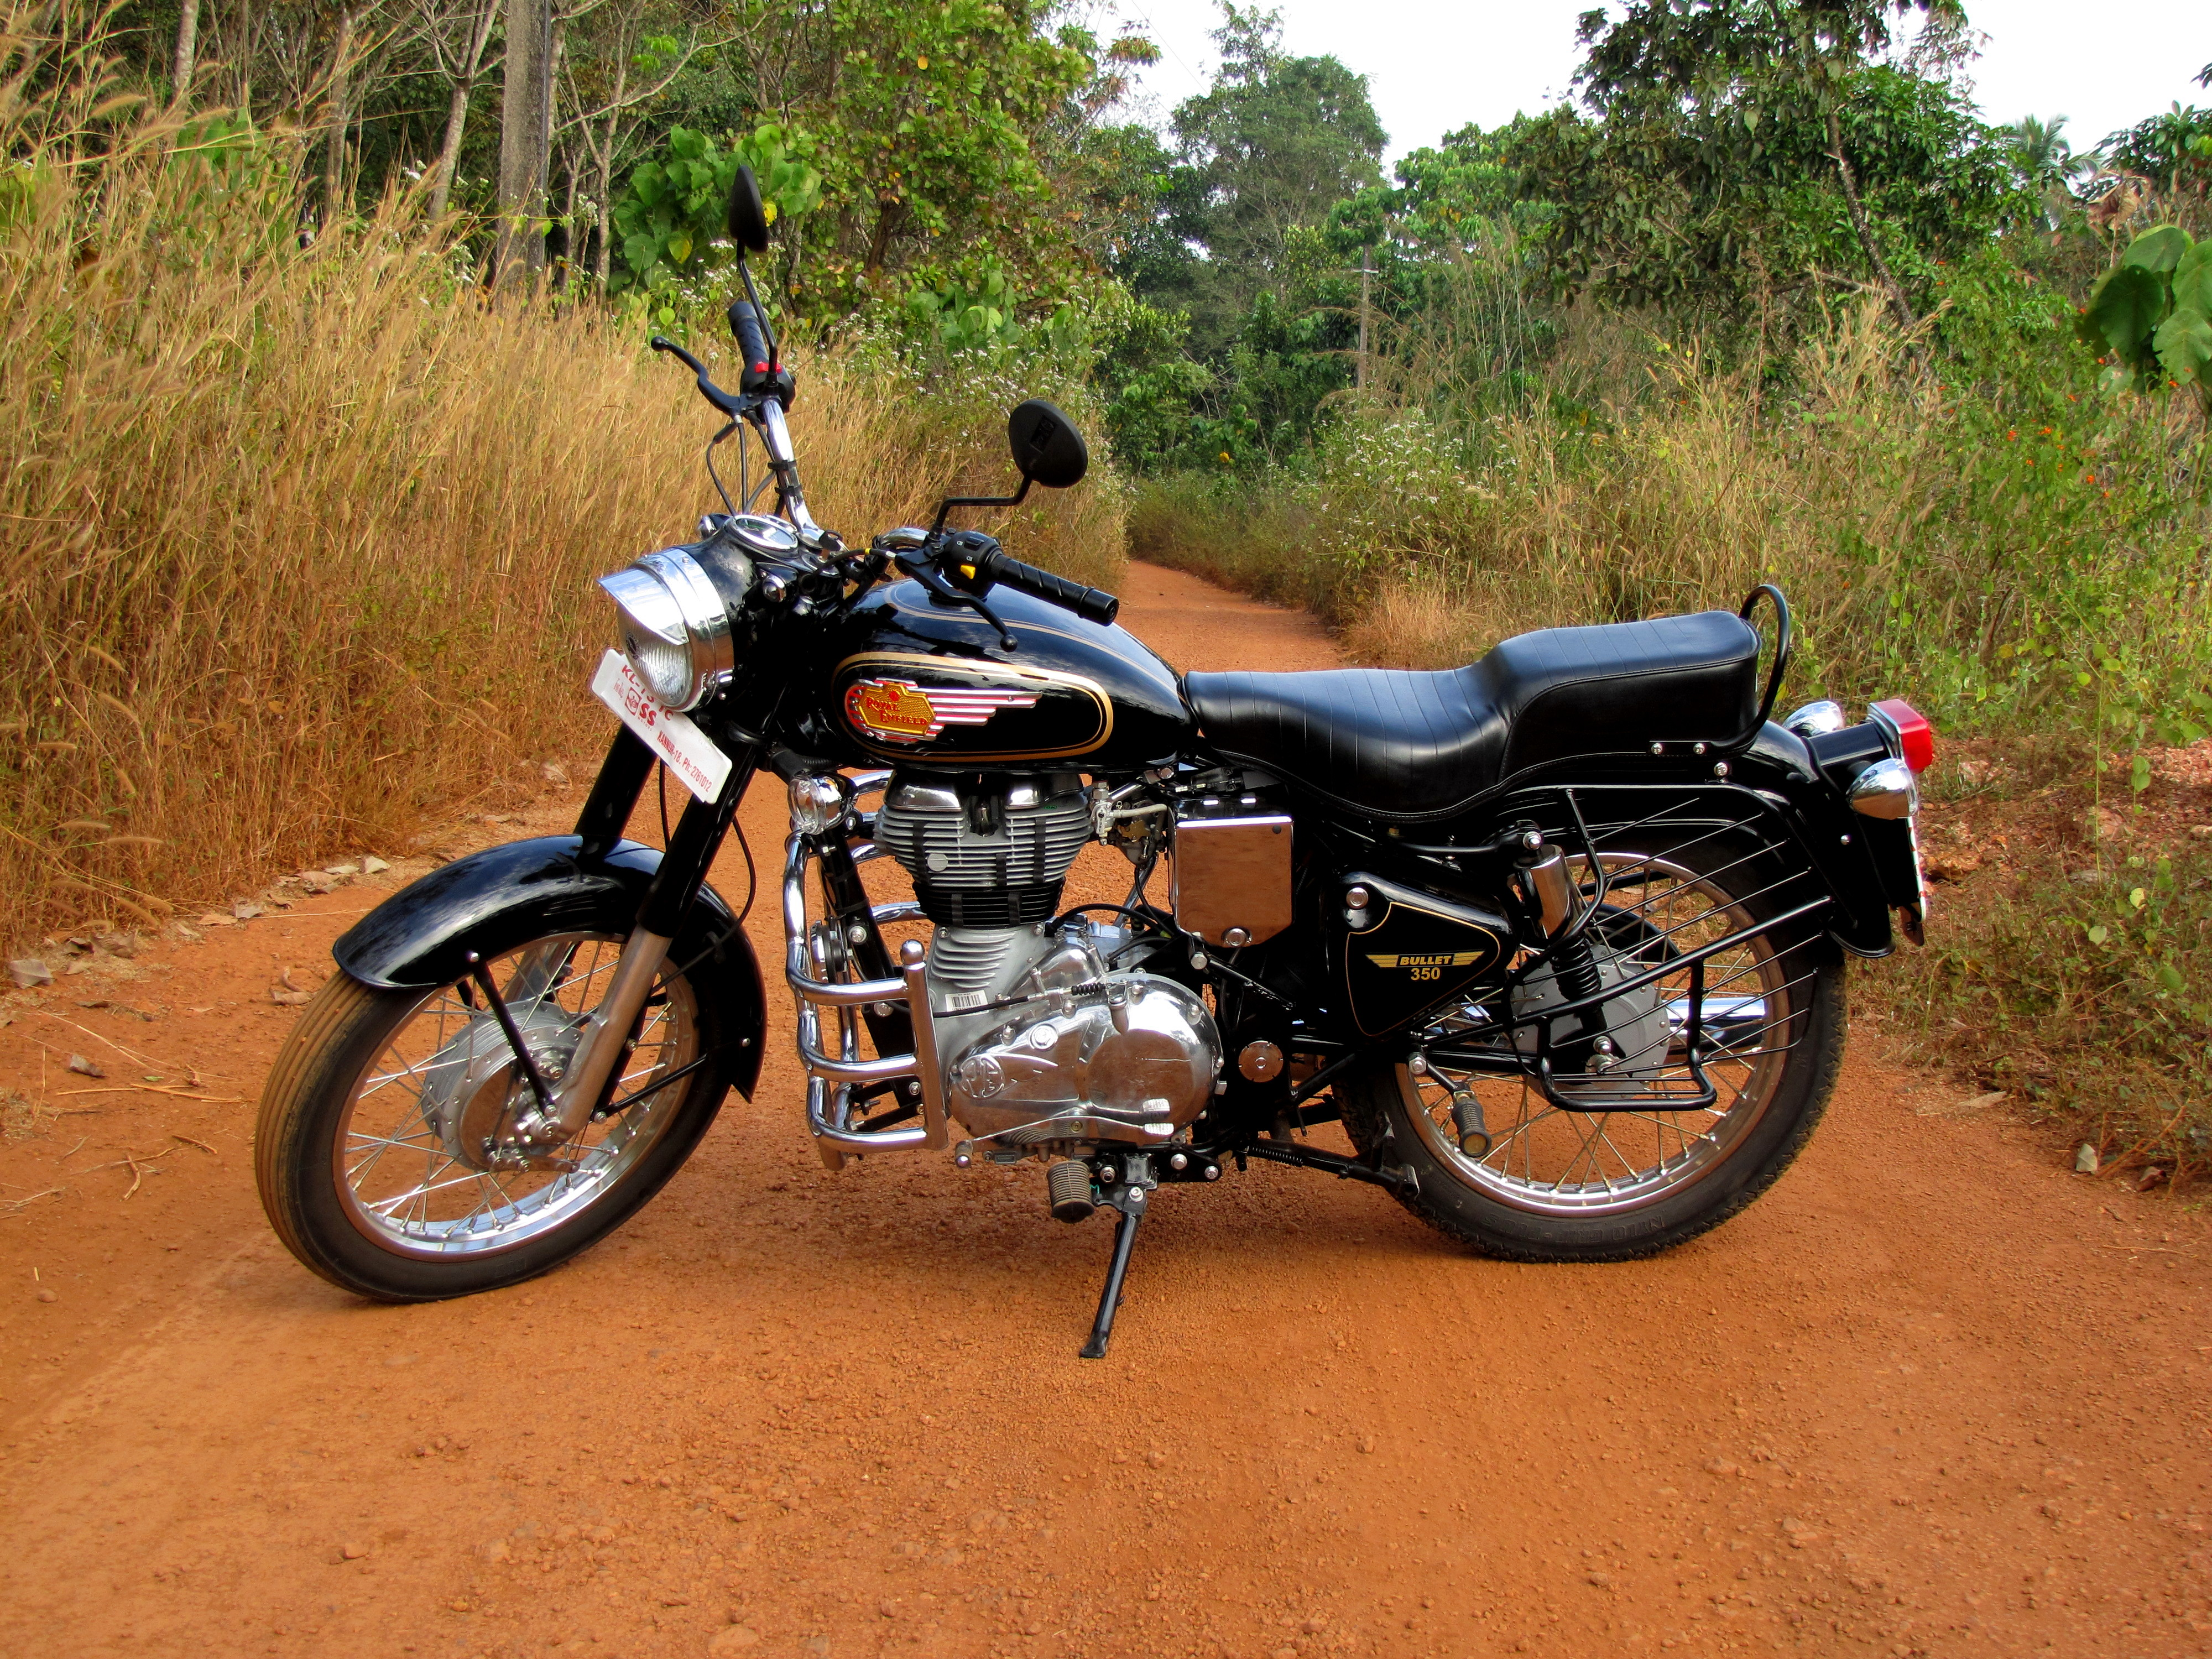 Royal Enfield Bullet 500 Army 1992 images #123380